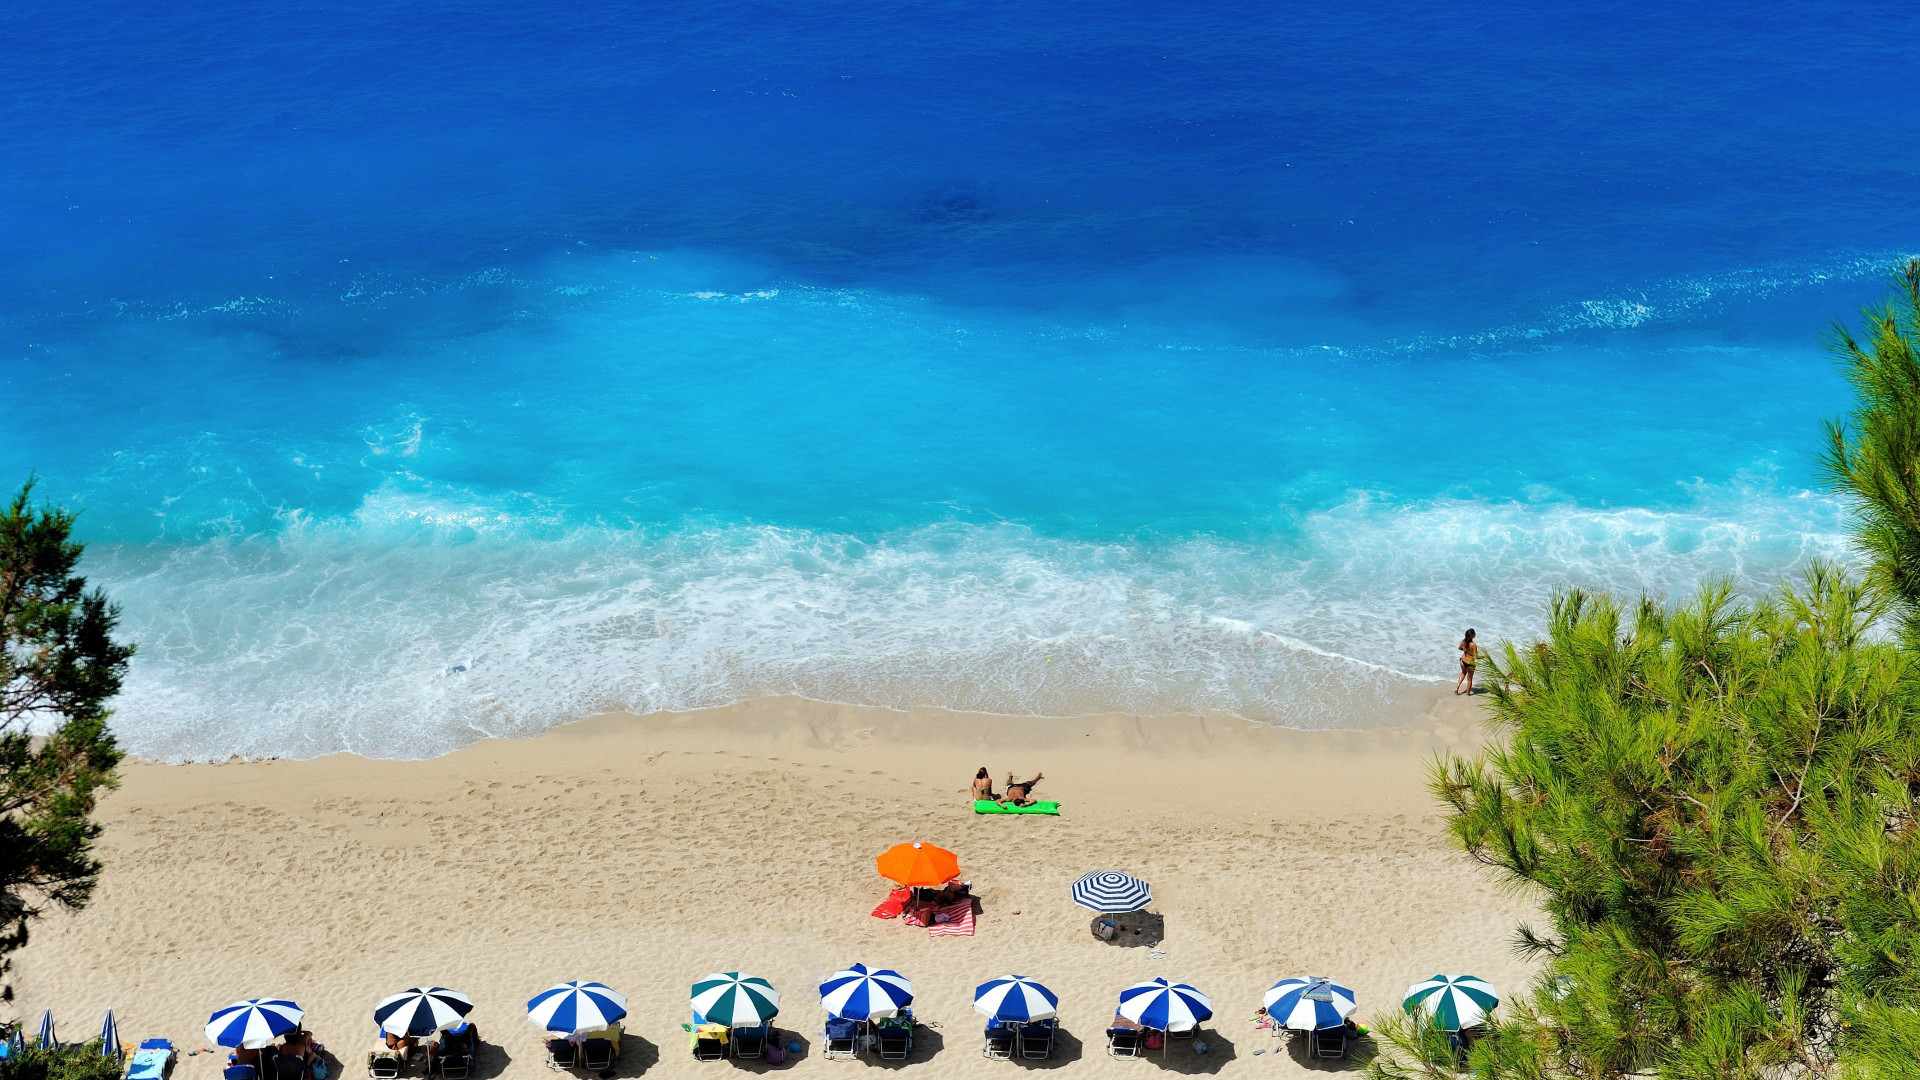 Lefkada Beach wallpaper 1920x1080